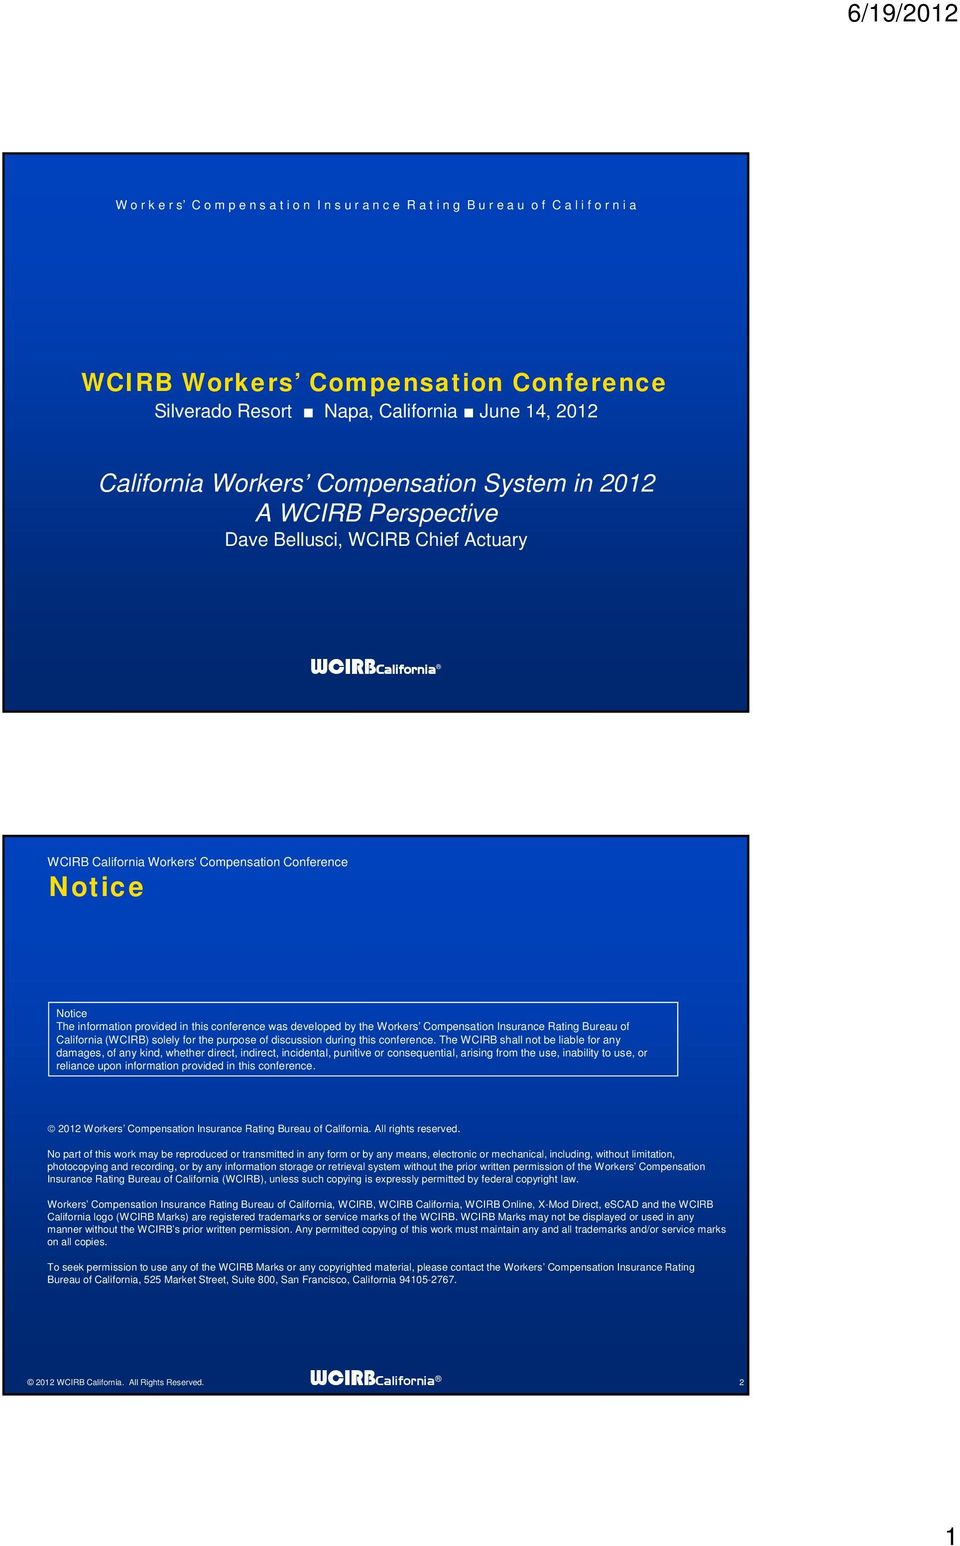 Workers Compensation Insurance Rating Bureau of California (WCIRB) solely for the purpose of discussion during this conference.